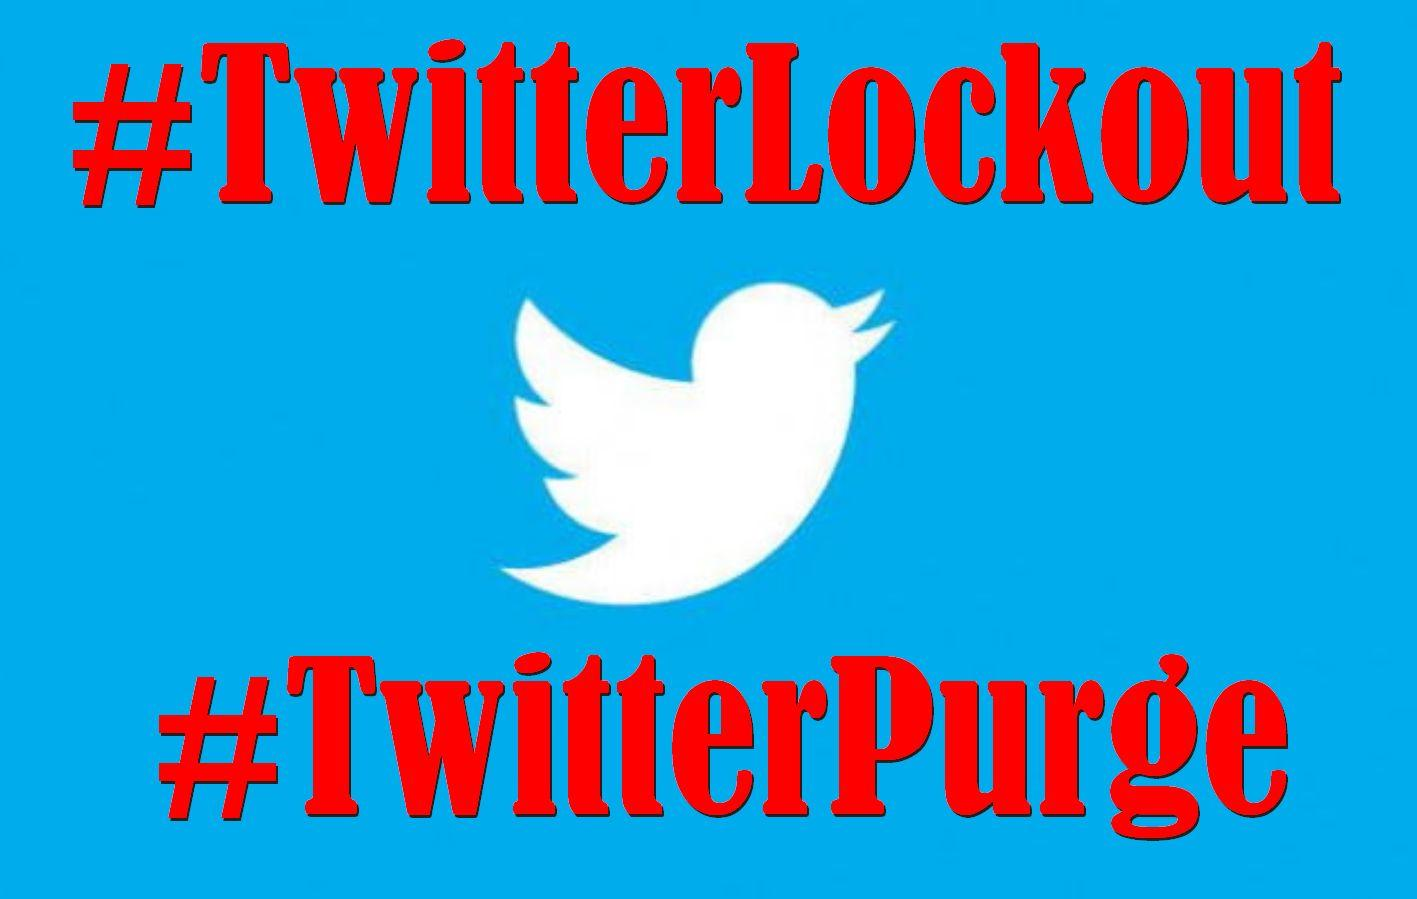 Twitter Users Are Complaining About a #Twitterlockout and a #Twitterpurge